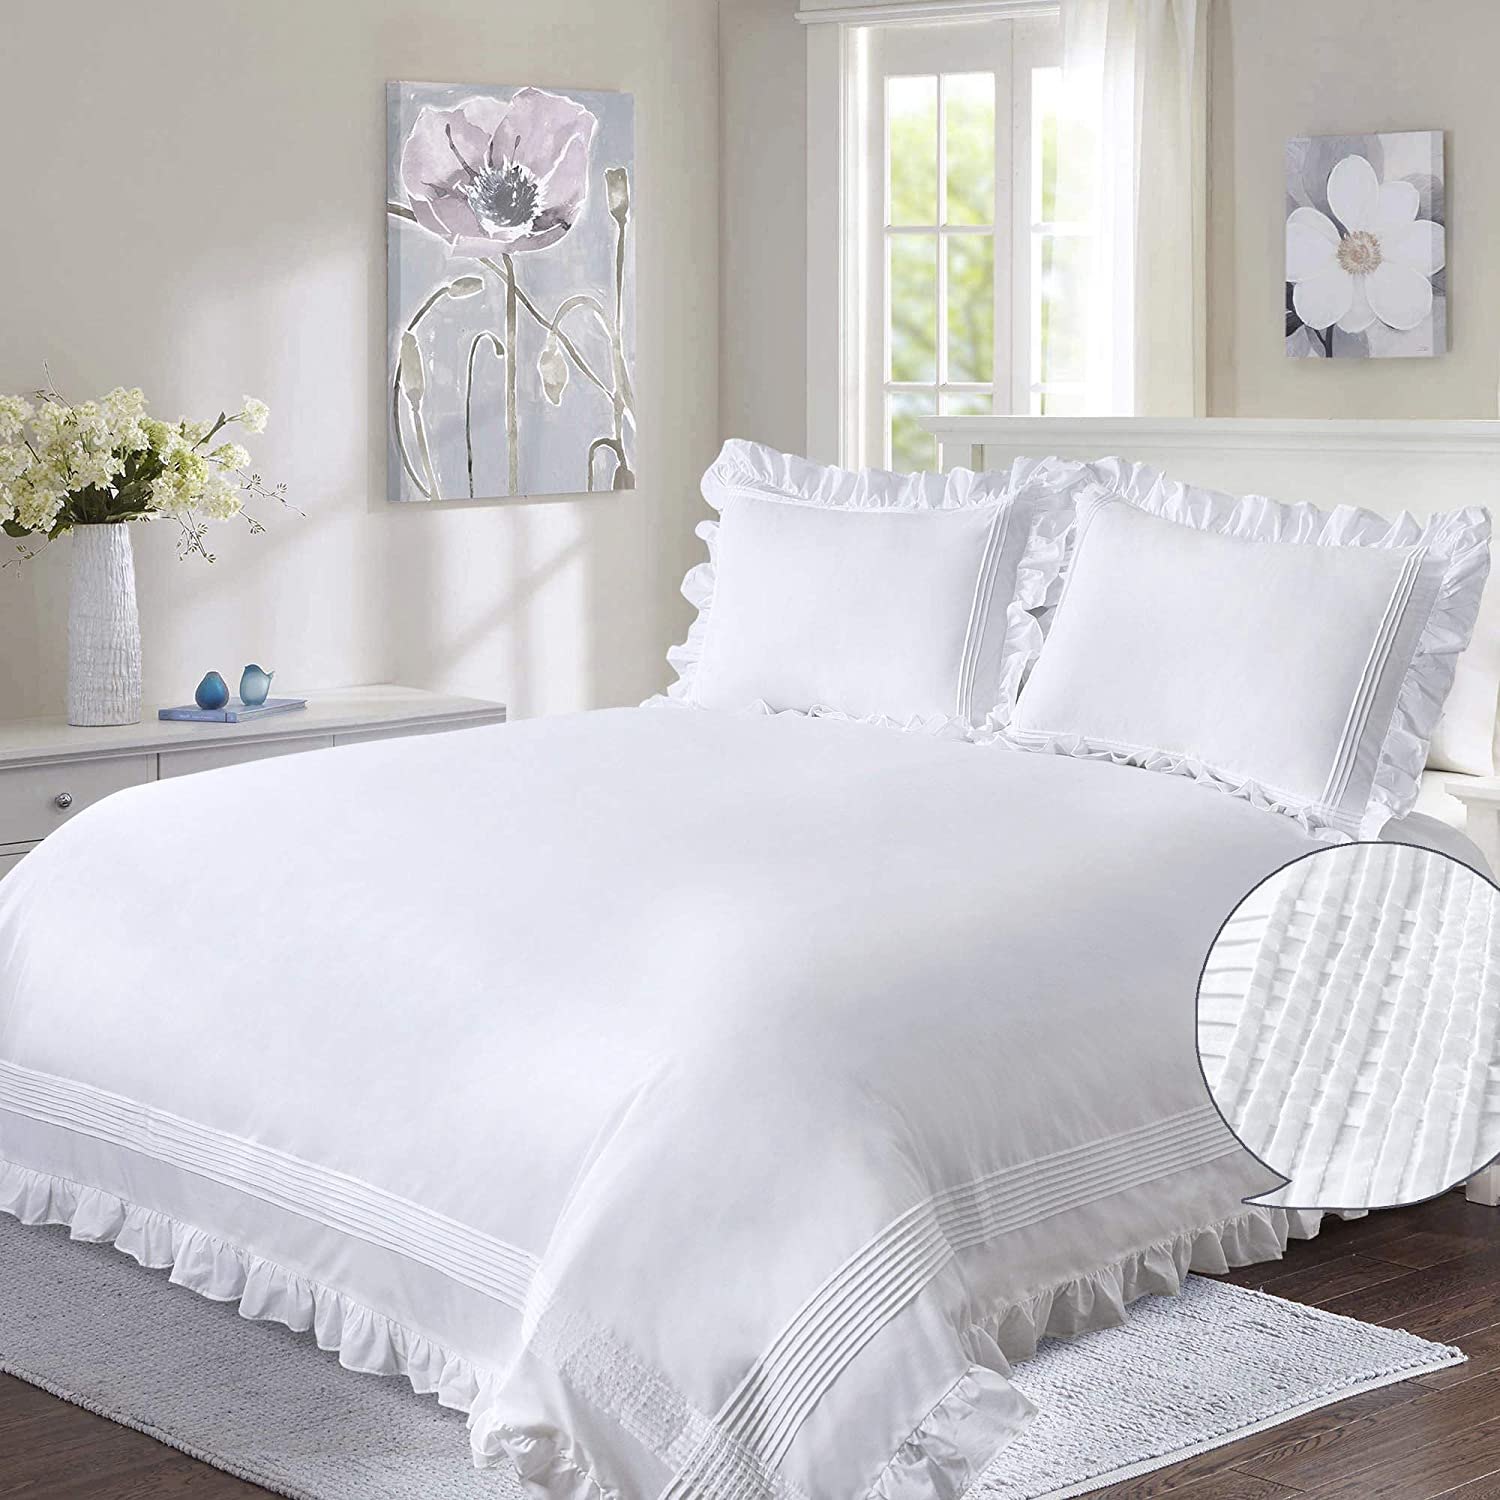 YINFUNG Ruffle Duvet Cover White Queen Women 3PC Shabby Chic Boho Trimmed Quilt Cover Girl Frilly 90x90 Farmhouse Rustic Flounce Border Pintuck Country Bed Set French Romantic Cute 2 Pillow Shams